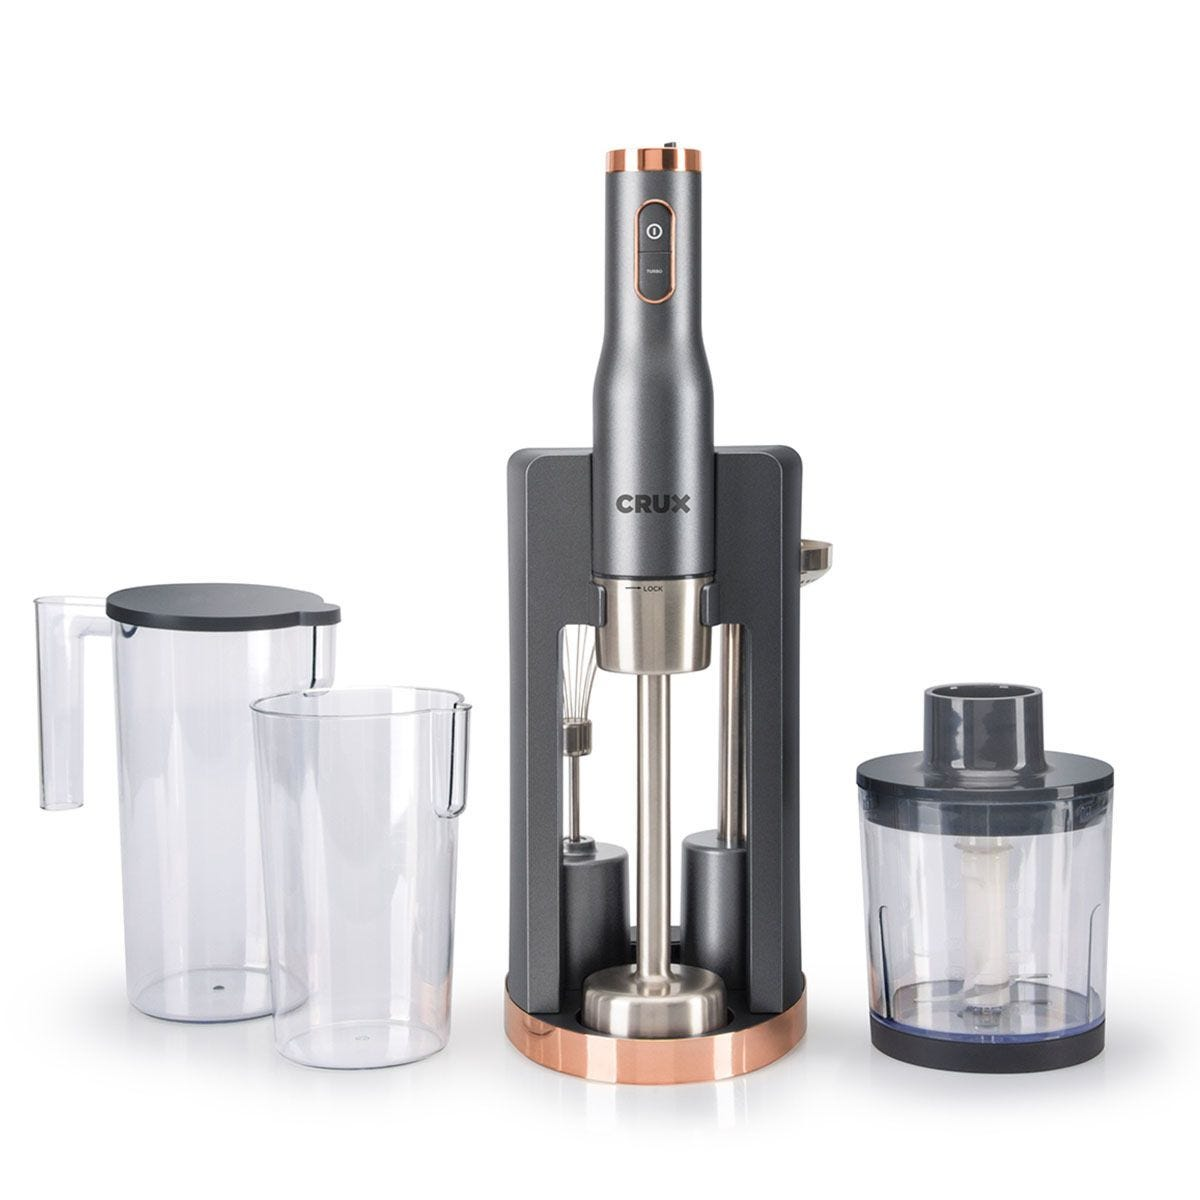 Crux 7-in-1 Hand Blender - Black, Silver & Rose Gold